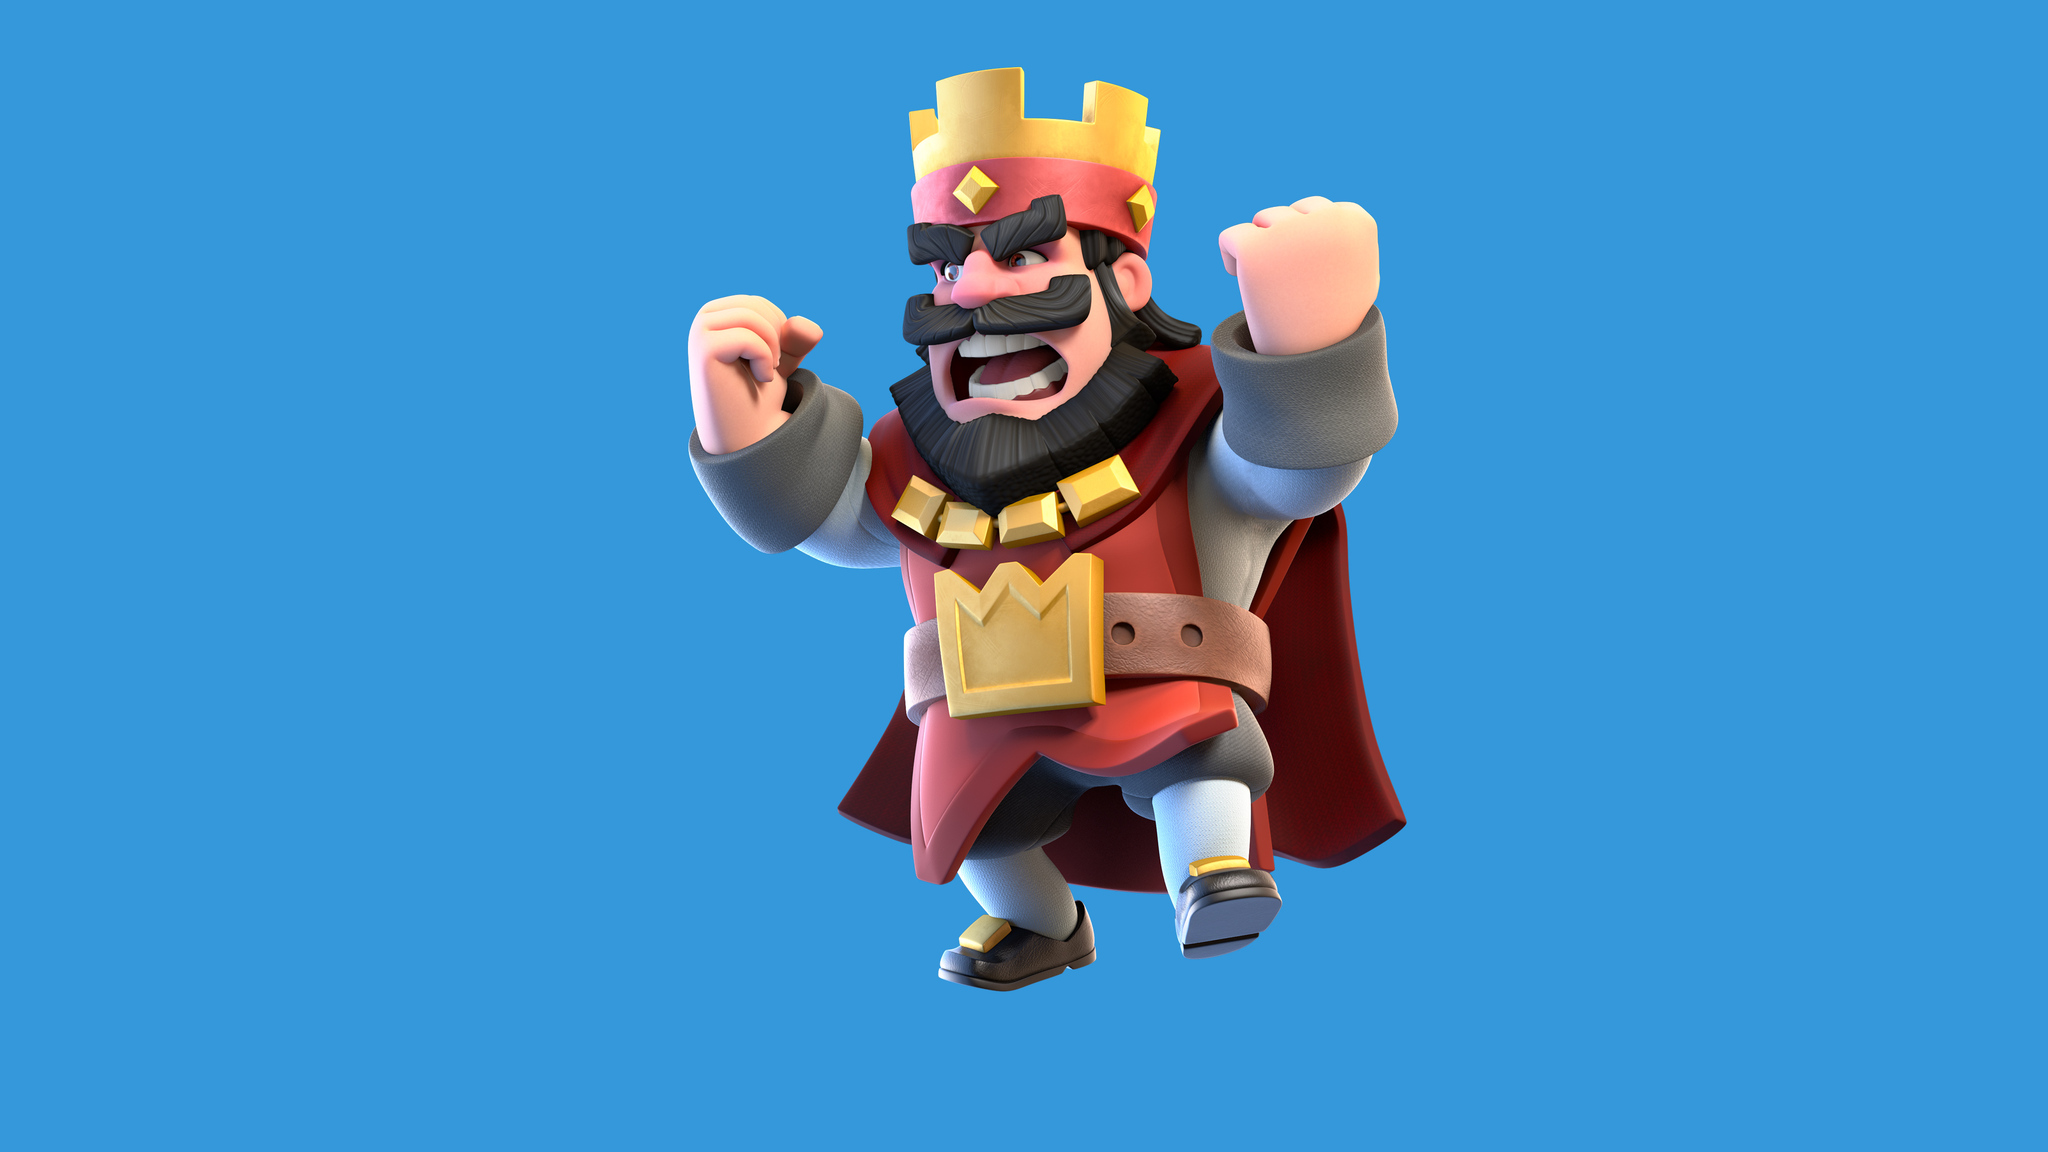 2048x1152 clash royale red king 2048x1152 resolution hd 4k wallpapers images backgrounds - Clash royale 2560x1440 ...